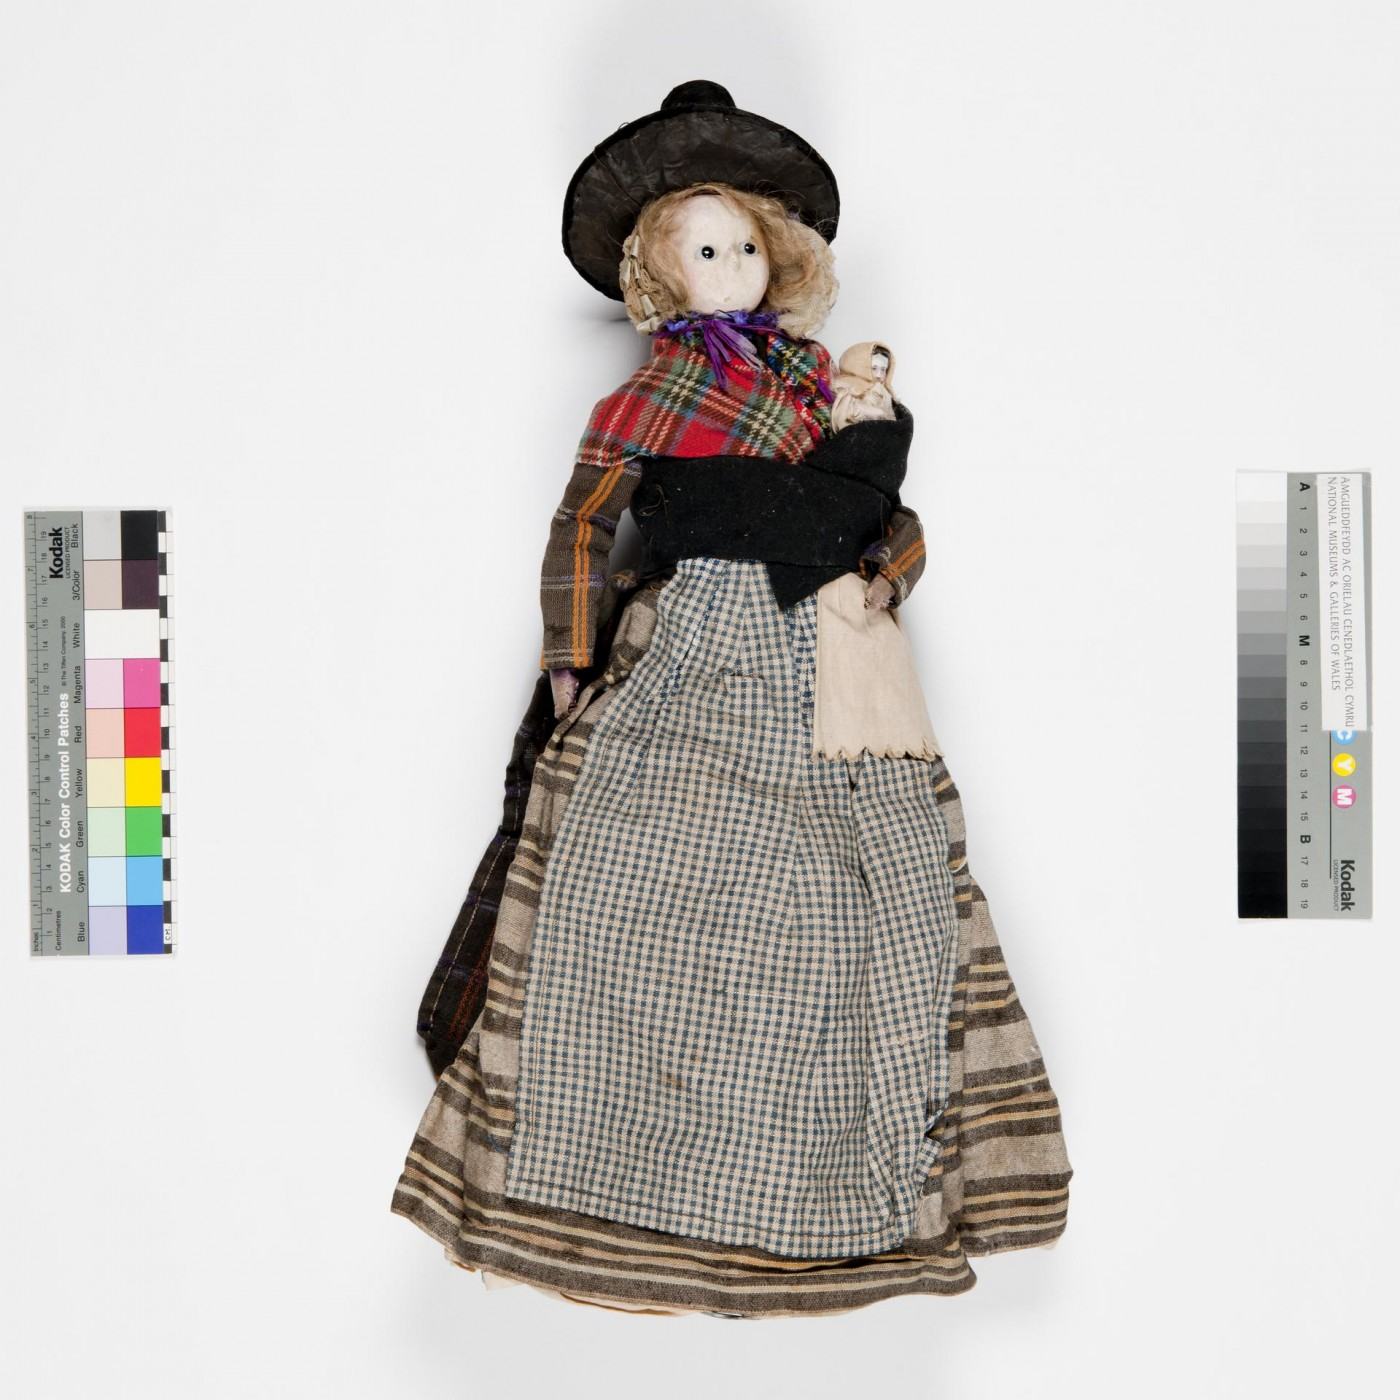 6:Doll in Welsh National costume, you can see the baby tucked into the whittle. Image courtesy of National Museum Wales item number 30.316